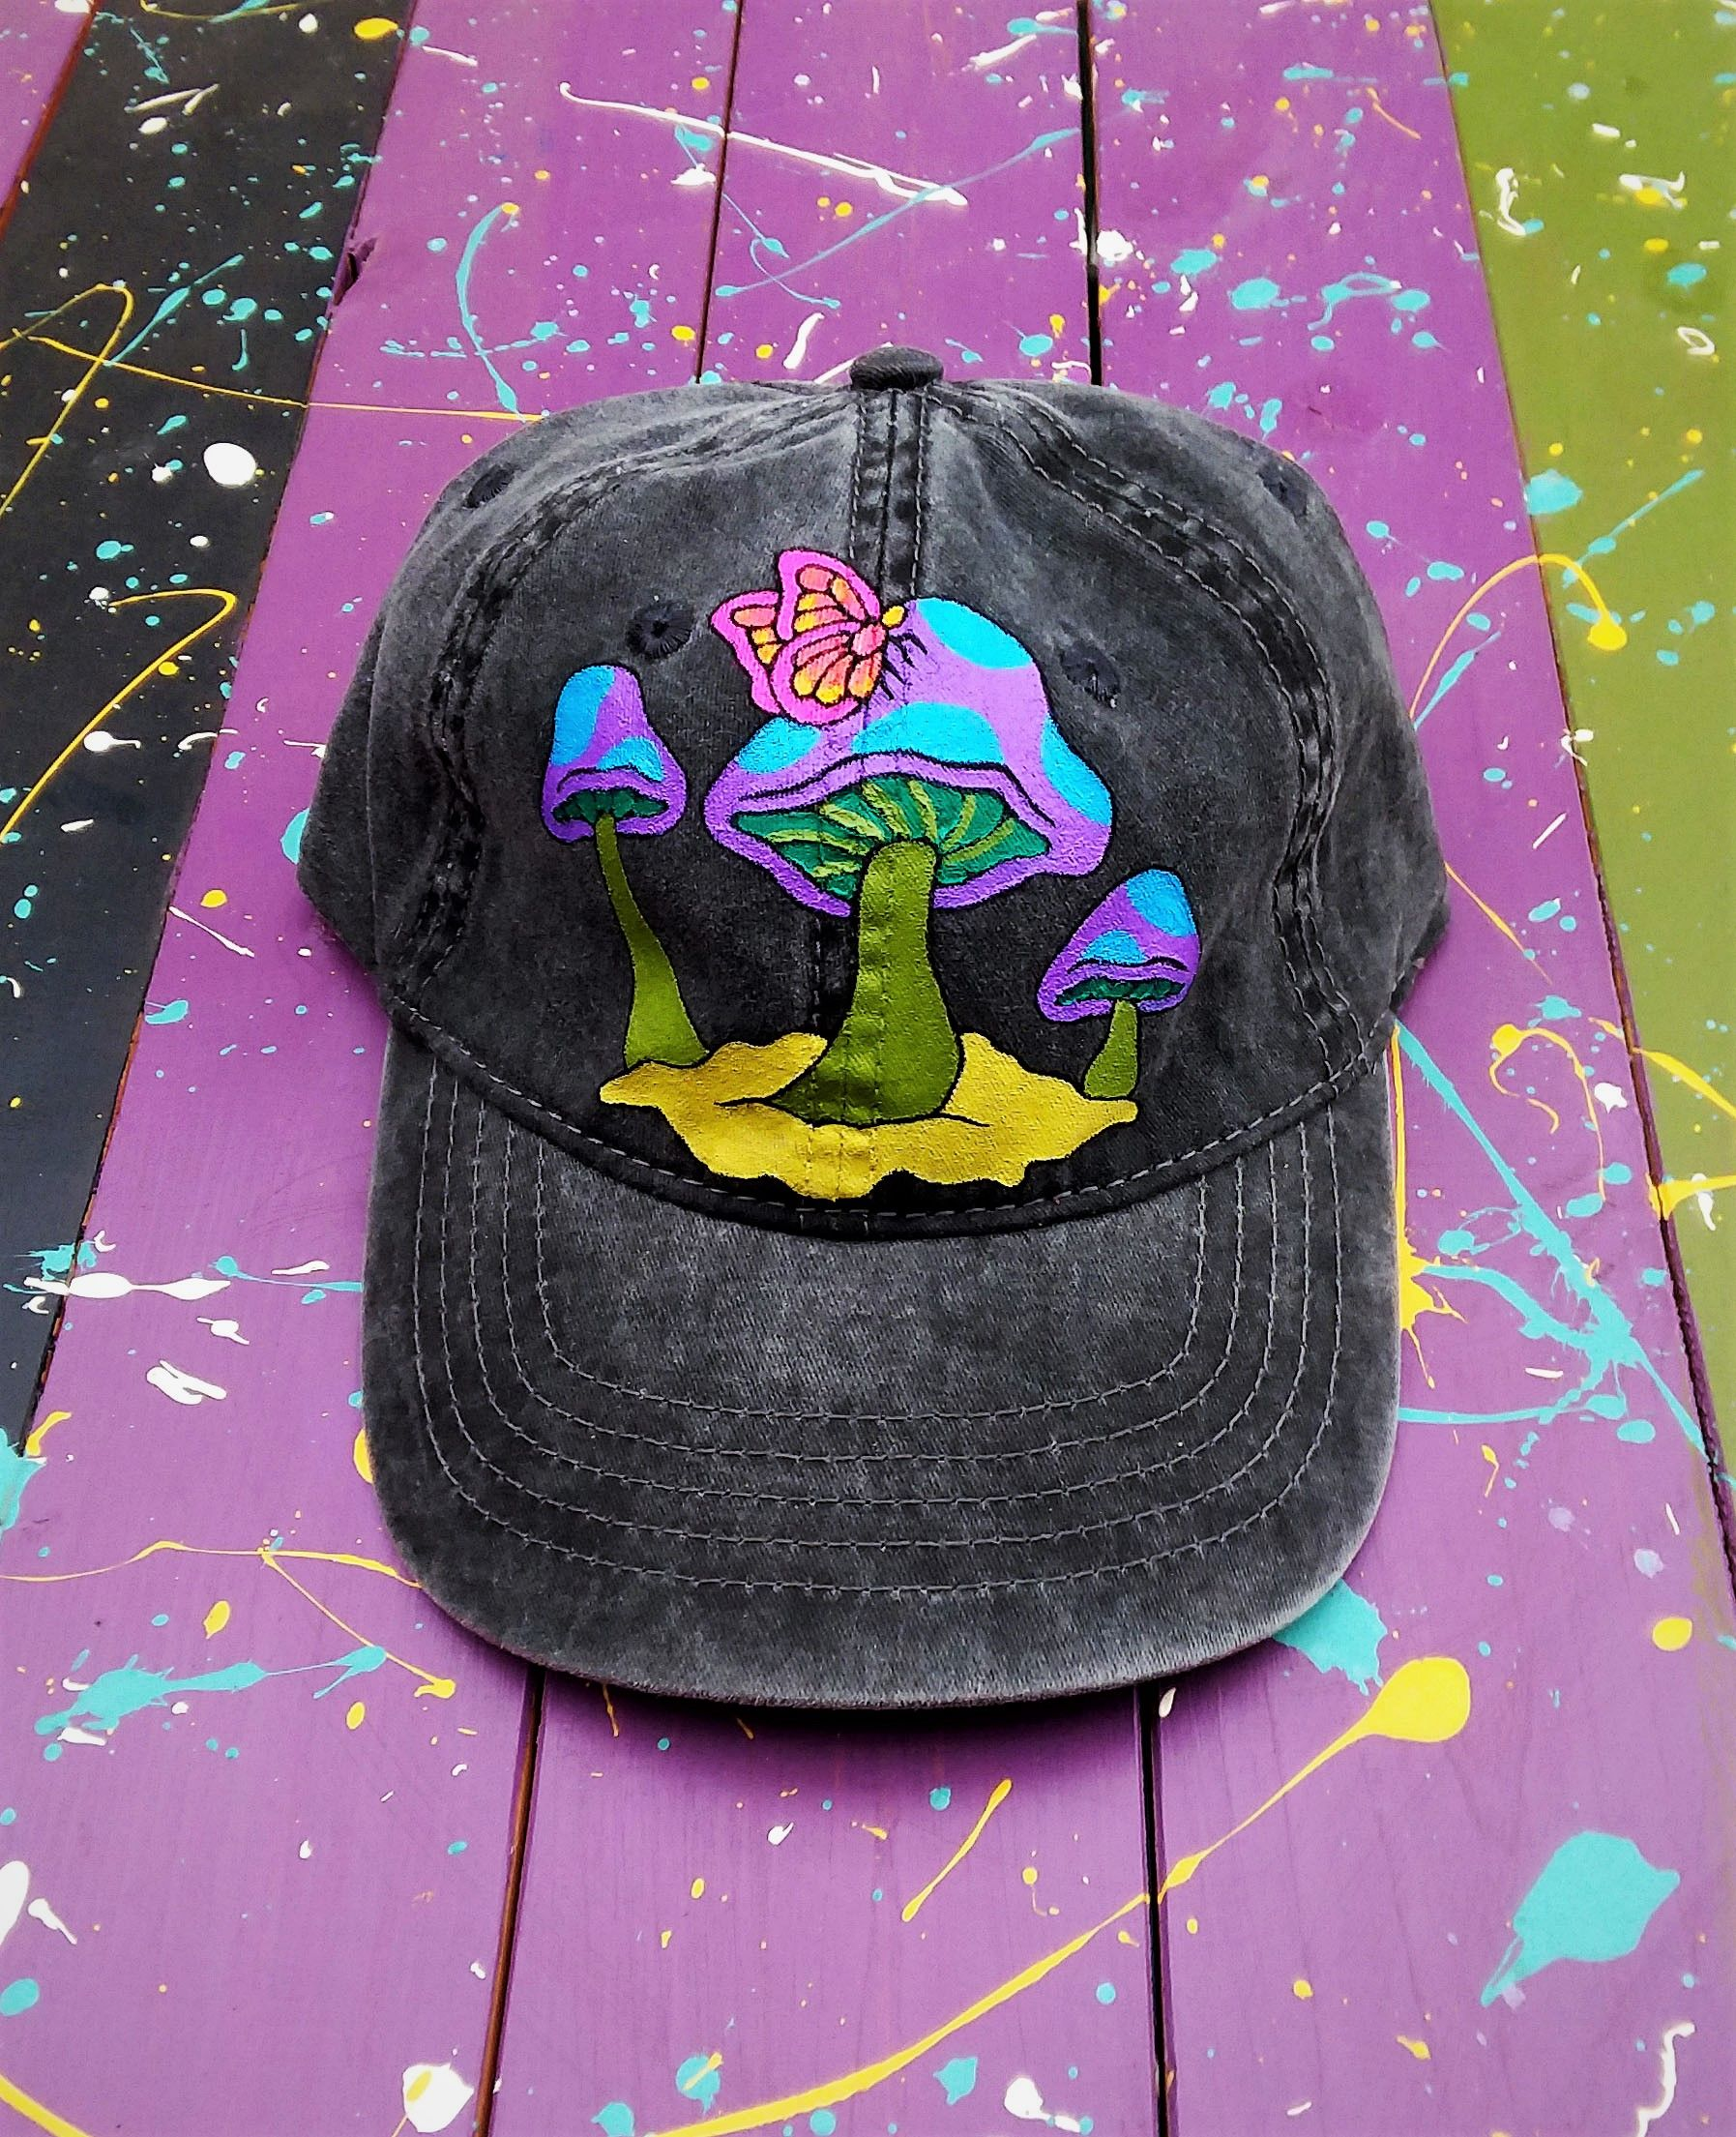 Hand Painted Psychedelic Butterfly Landing On Magic Mushroom Gray Denim Baseball Cap By Bleudoor On Instagra In 2021 Painted Hats Hand Painted Hats Embellished Jacket